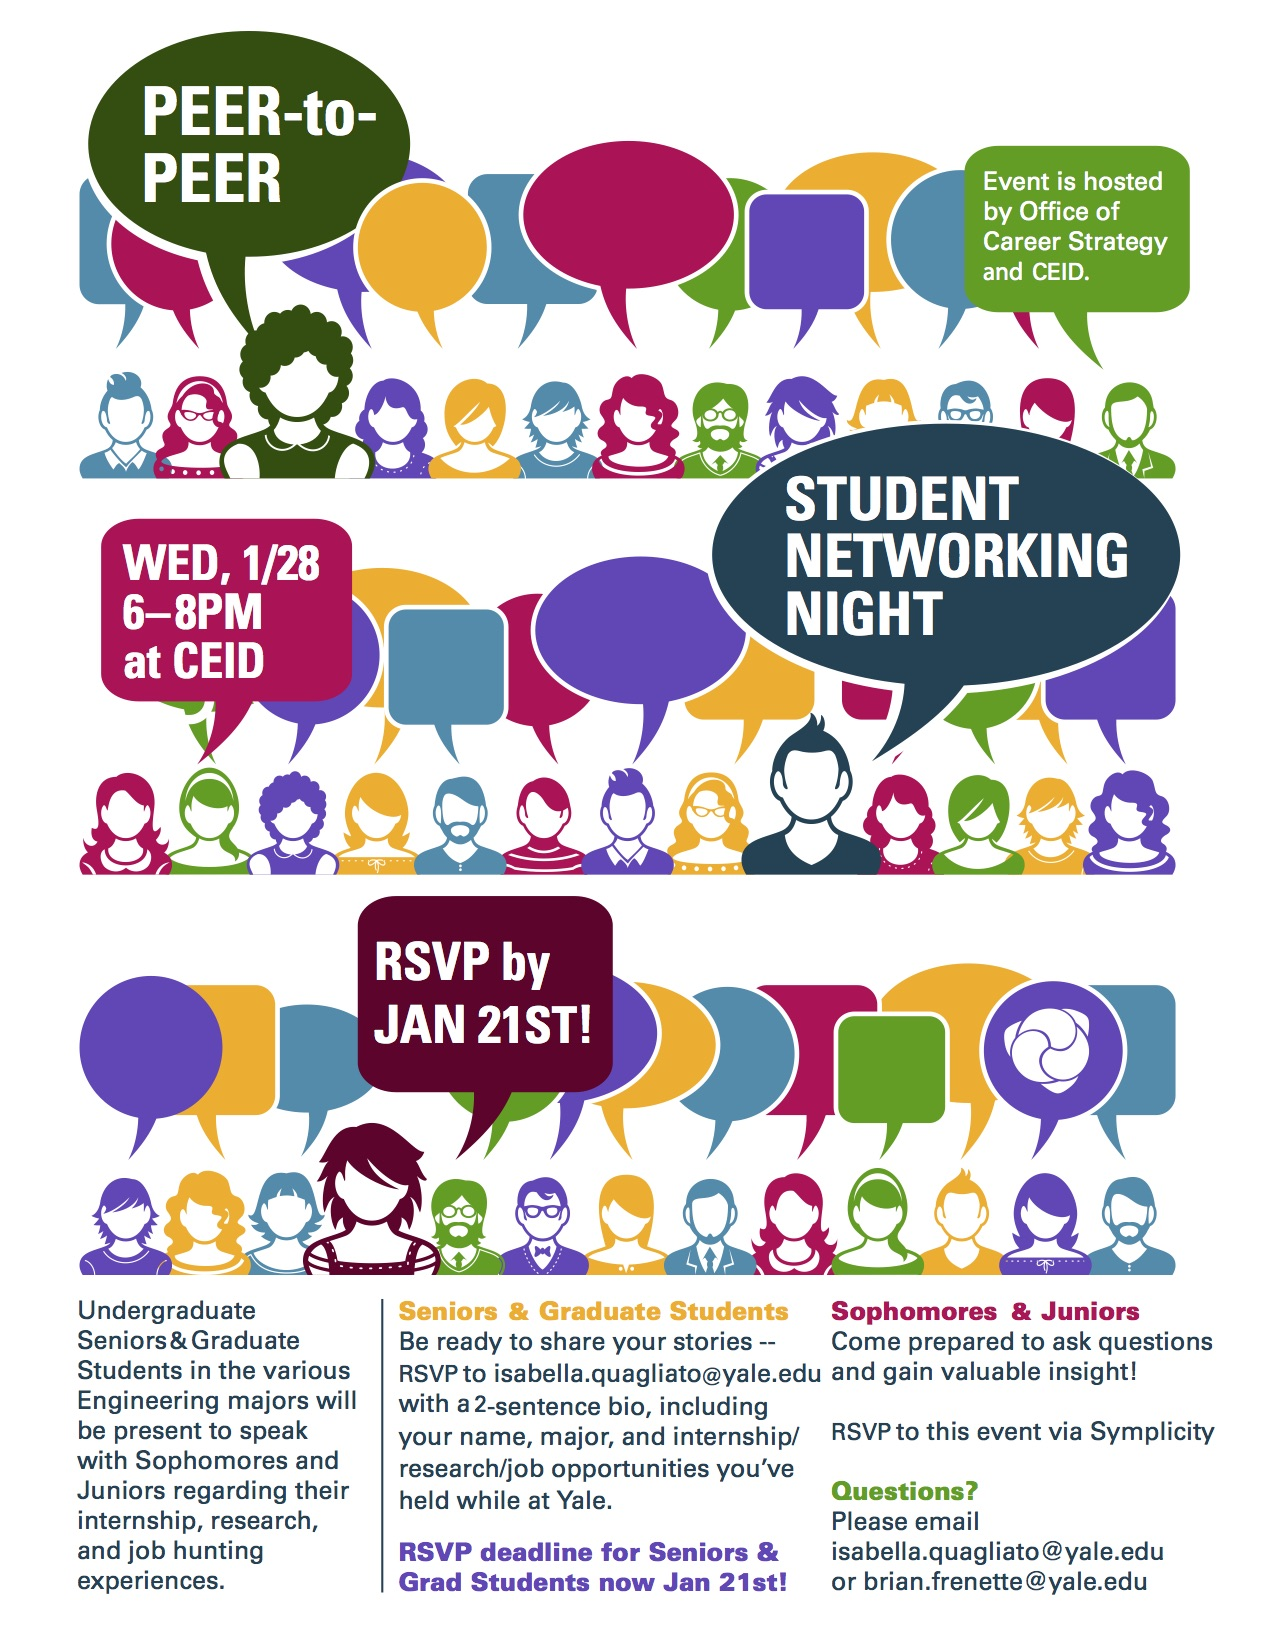 The Office of Career Strategy and the Yale School of Engineering are hosting a Peer-to-Peer Student Networking Night on Wednesday, January 28th at the Center for Engineering Innovation & Design from 6-8pm! Undergraduate Seniors & Graduate Students in the various Engineering majors will be present to speak with Sophomores and Juniors regarding their internship, research, and job hunting experiences.  Seniors & Graduate Students, be ready to share your stories and resources! Sophomores & Juniors, come prepared to ask questions and gain valuable insight! This is a low key affair, aimed at allowing students to network with peers. Snacks will be served!